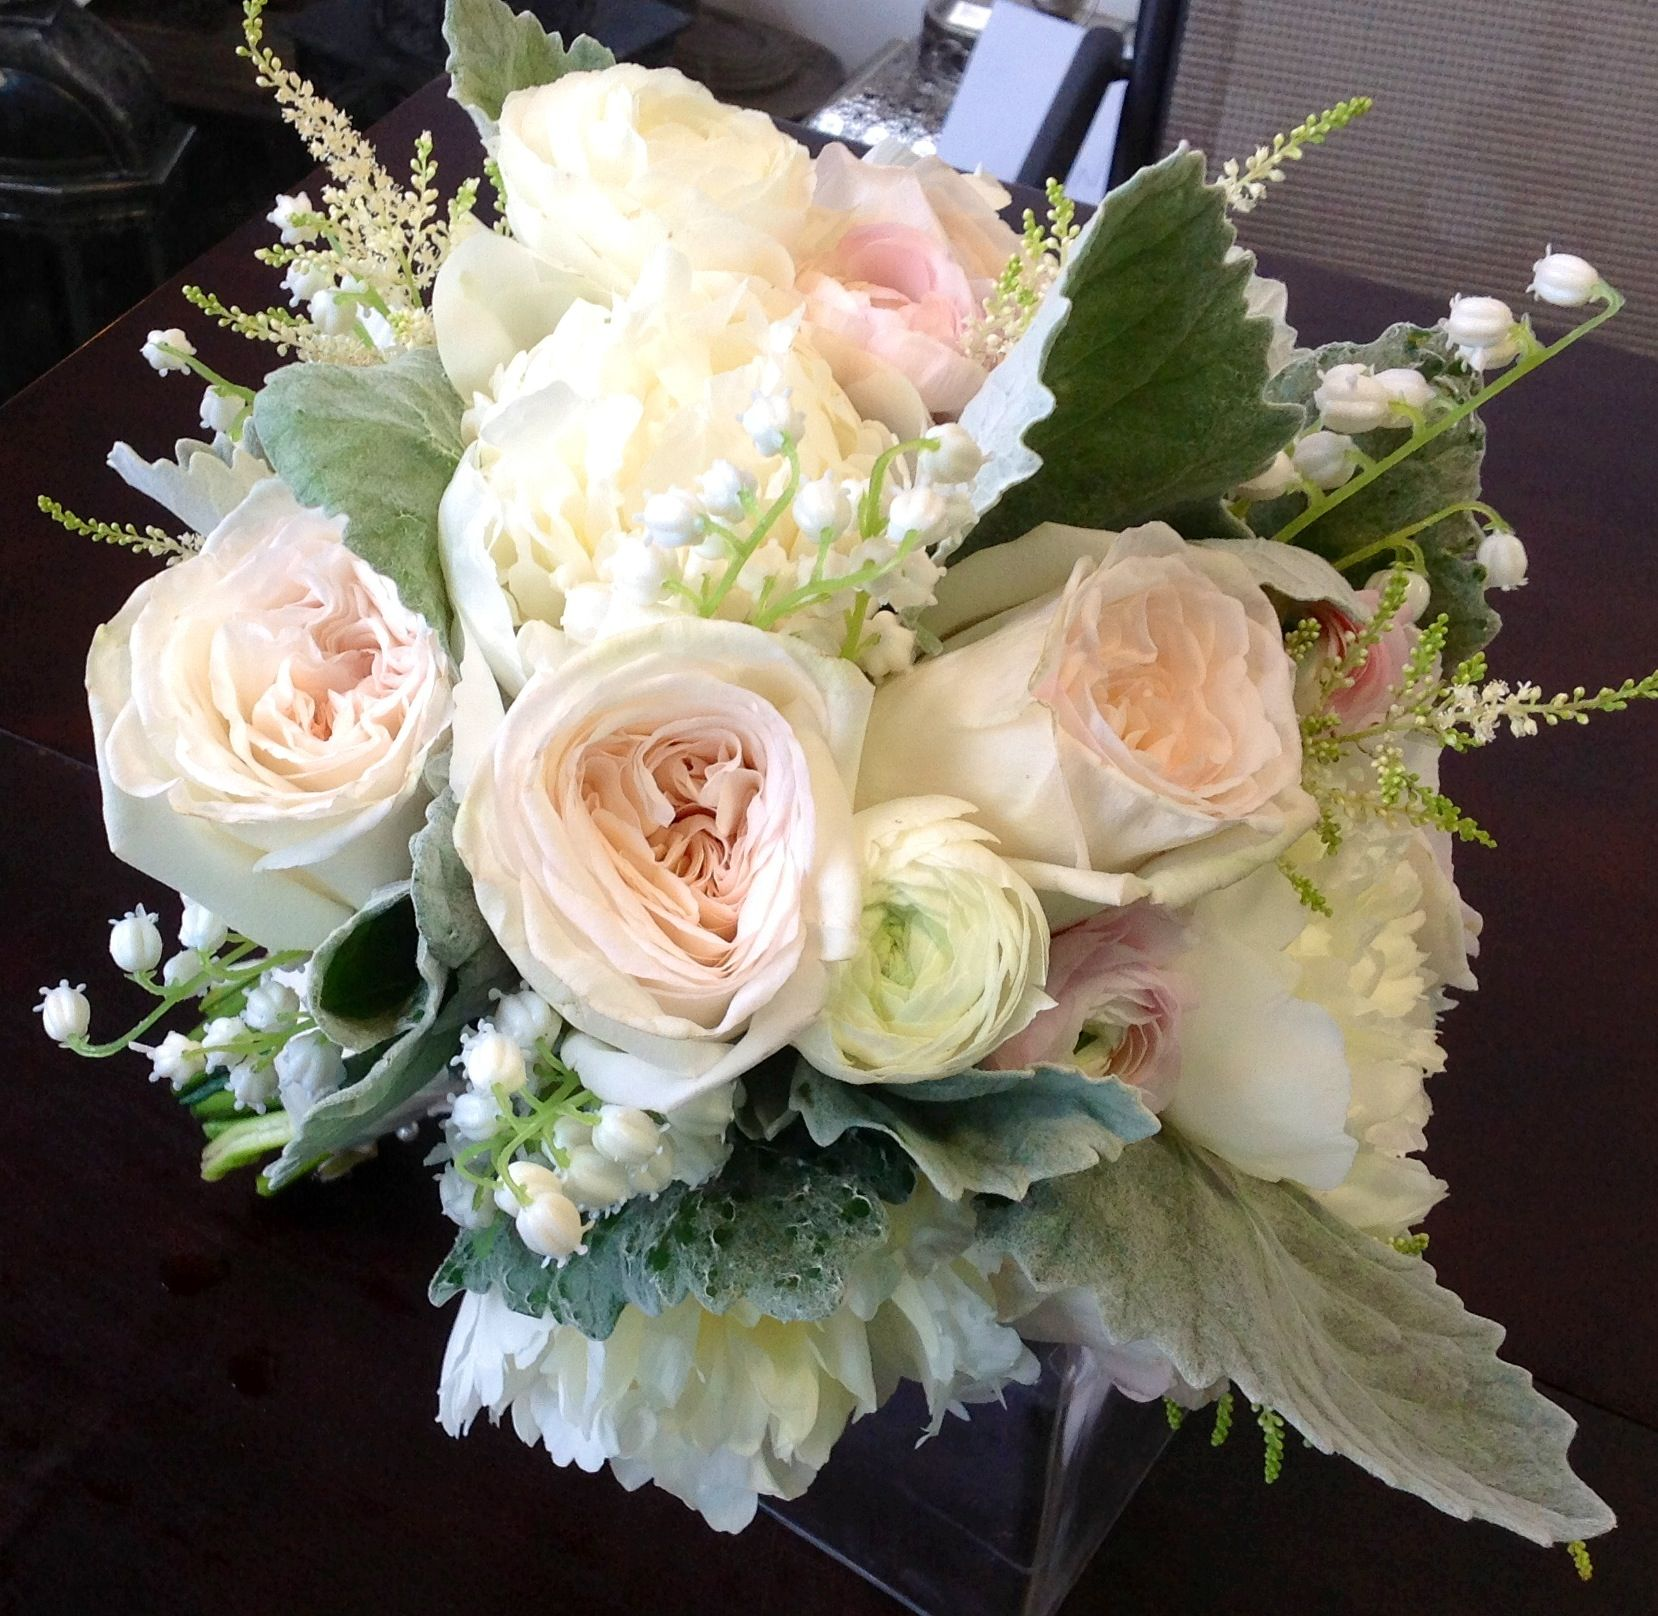 lily of the valley blush garden rose bouquet